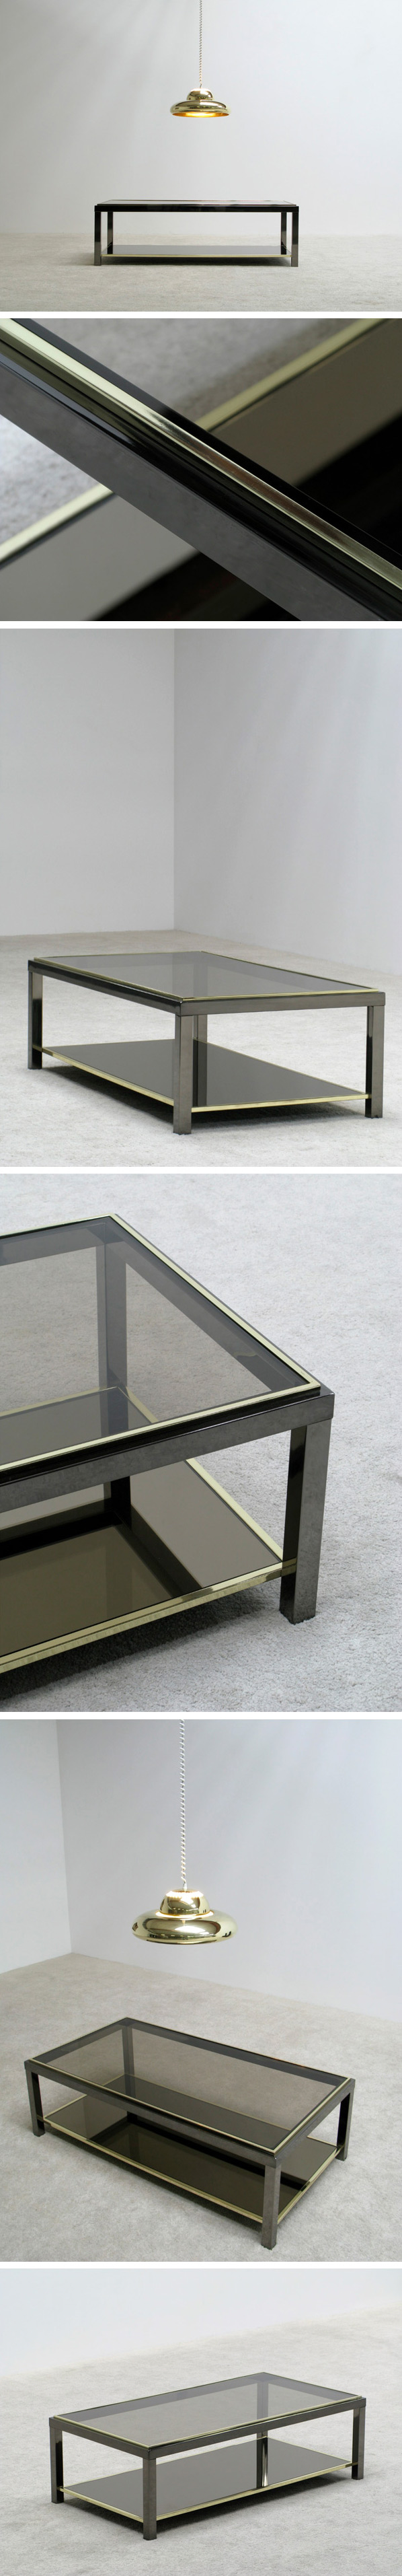 Roche Bobois coffee table Large